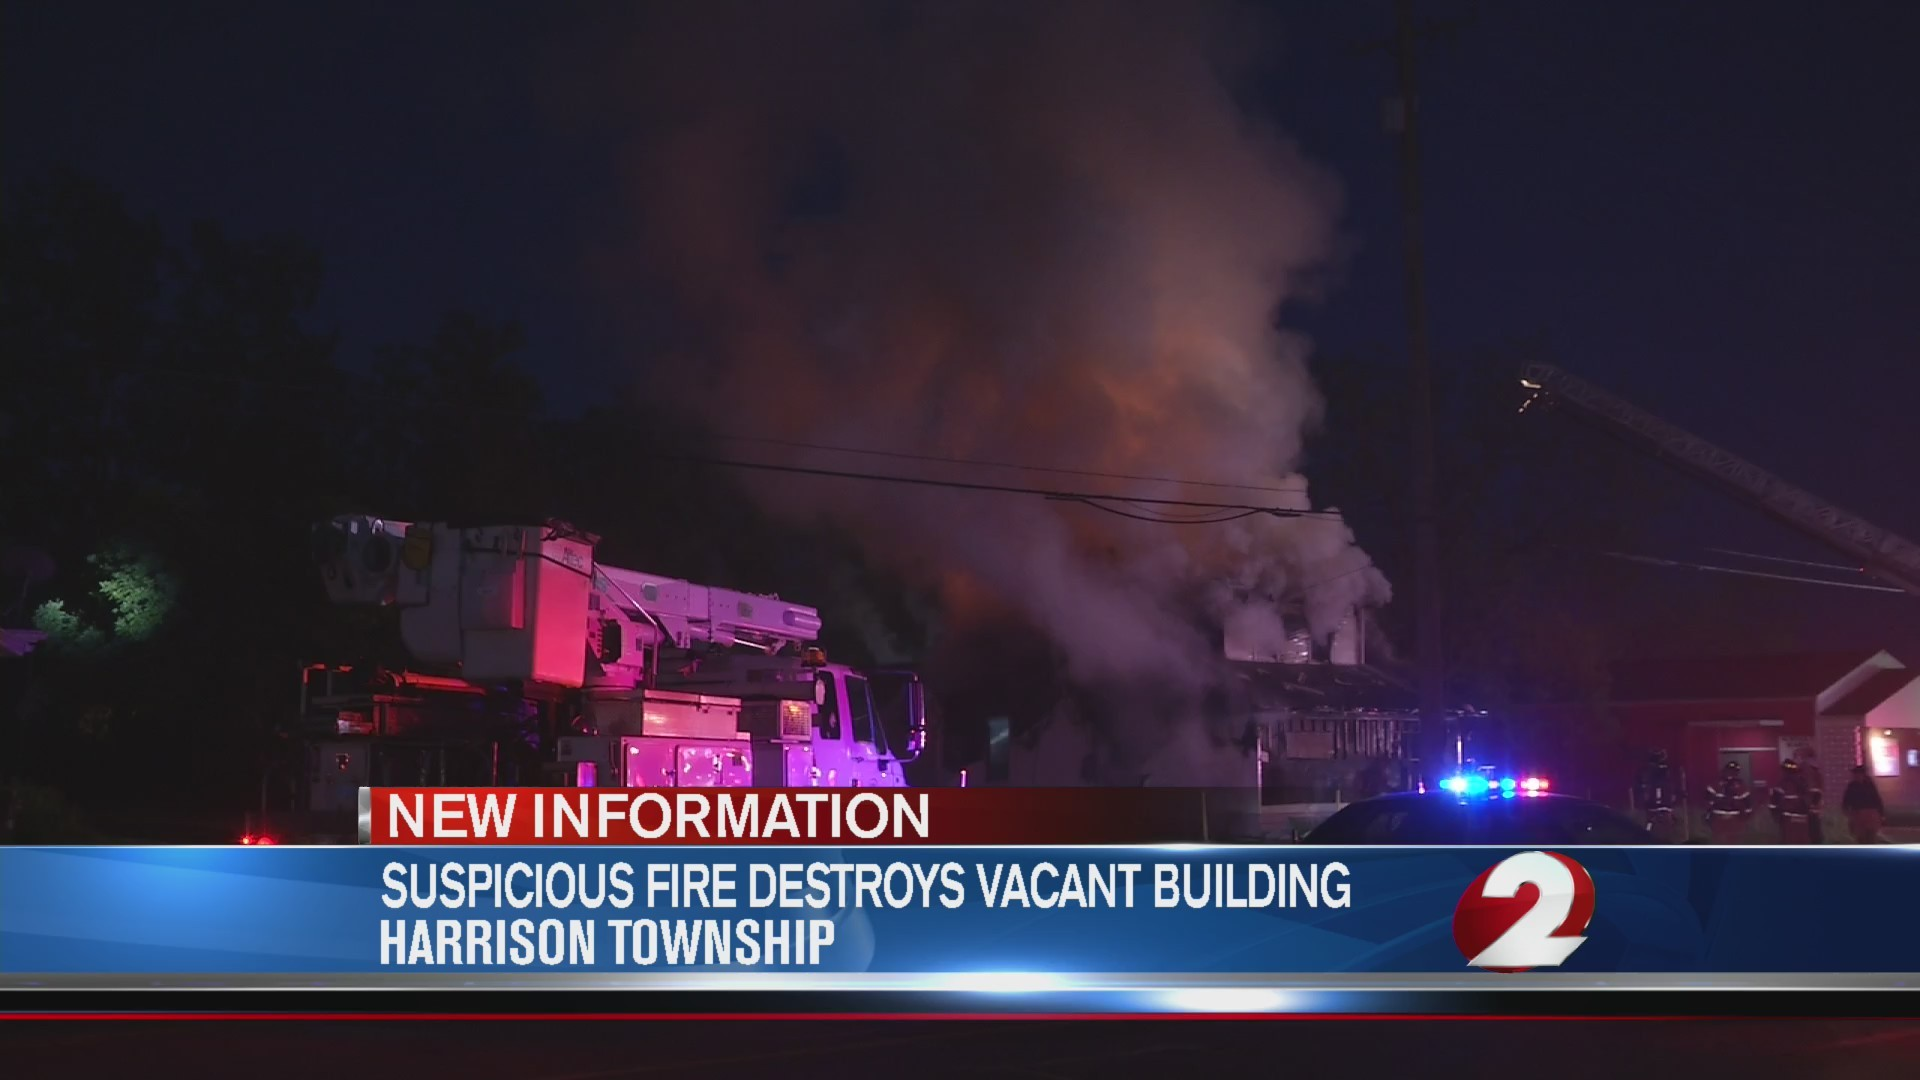 Suspicious fire destroys vacant building